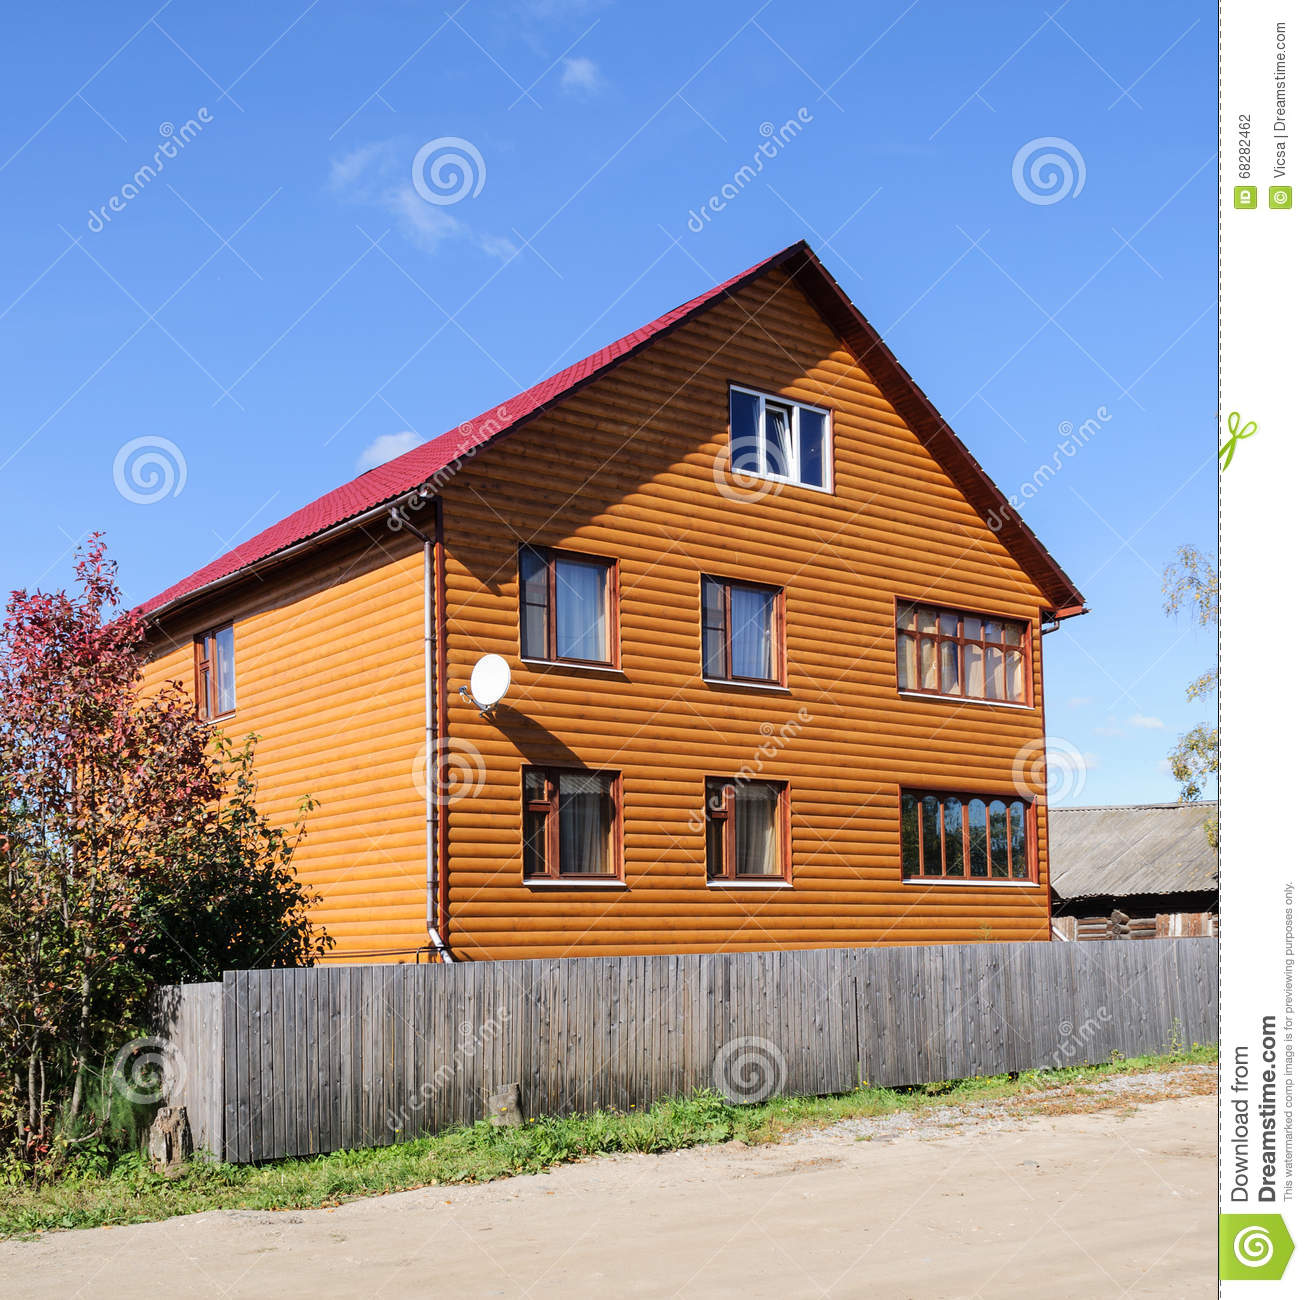 New Orange Two Storey Wooden Building Stock Photo Image